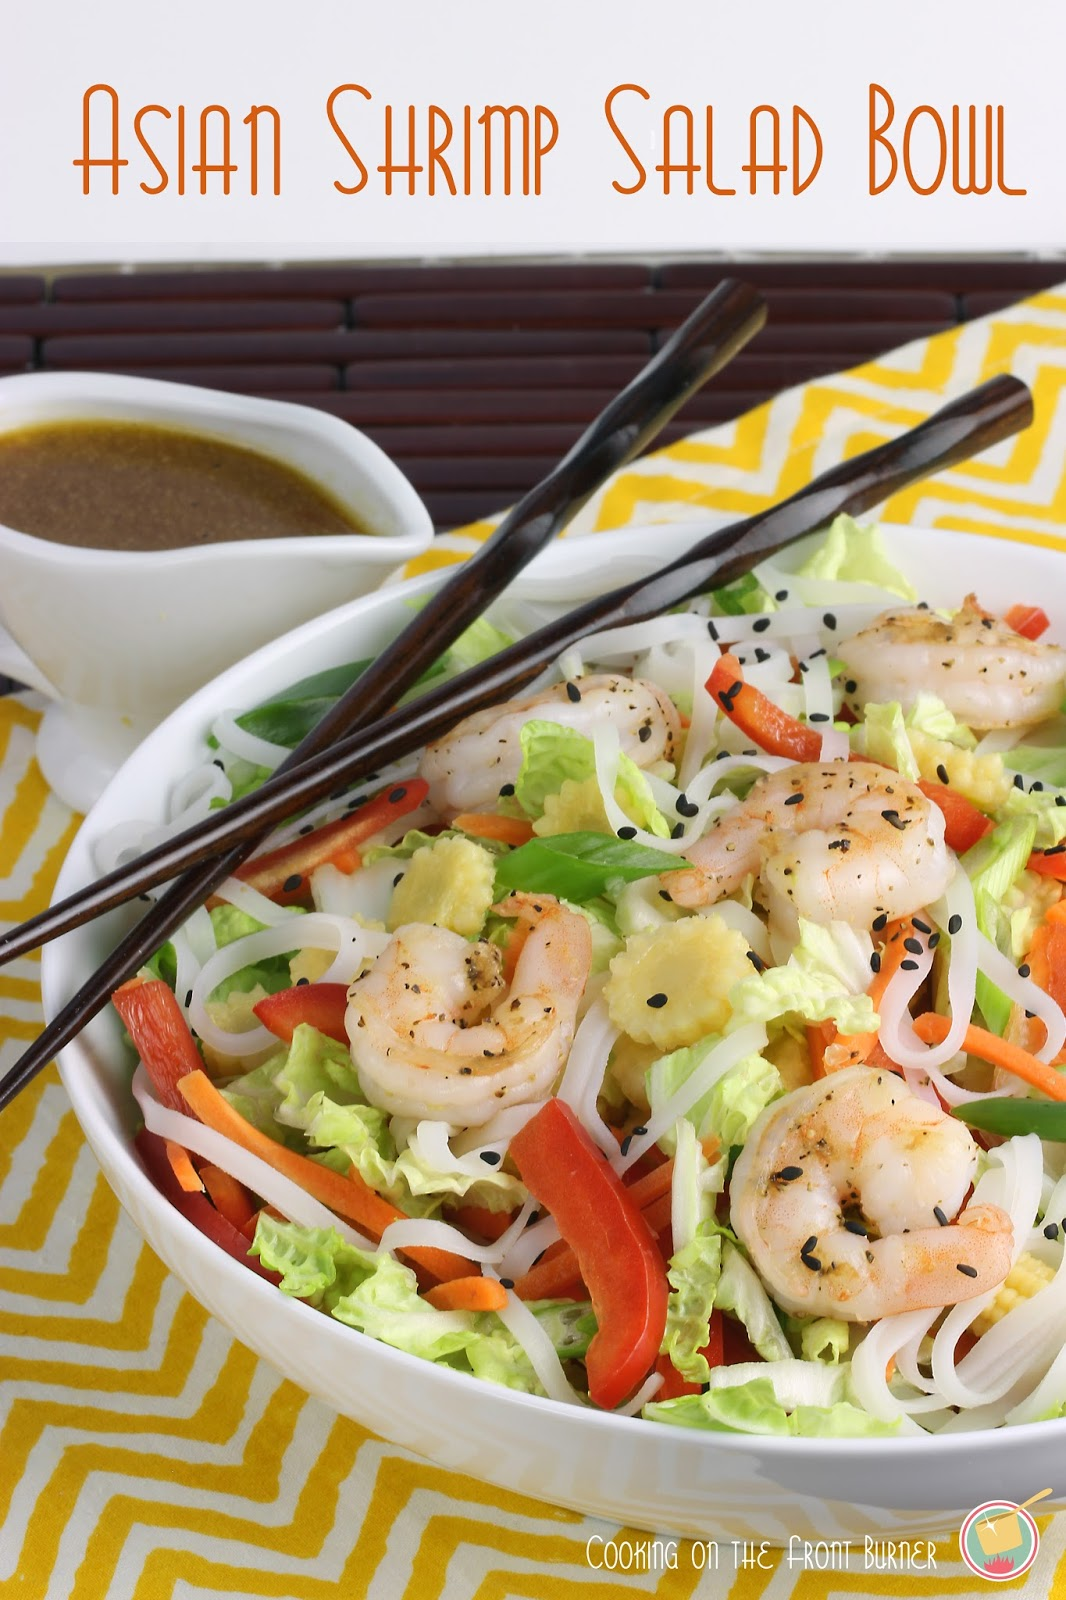 Asian Shrimp Salad Bowl - fresh ingredients with a homemade dressing infused with Asian flavors | Cooking on the Front Burner #asiansalad